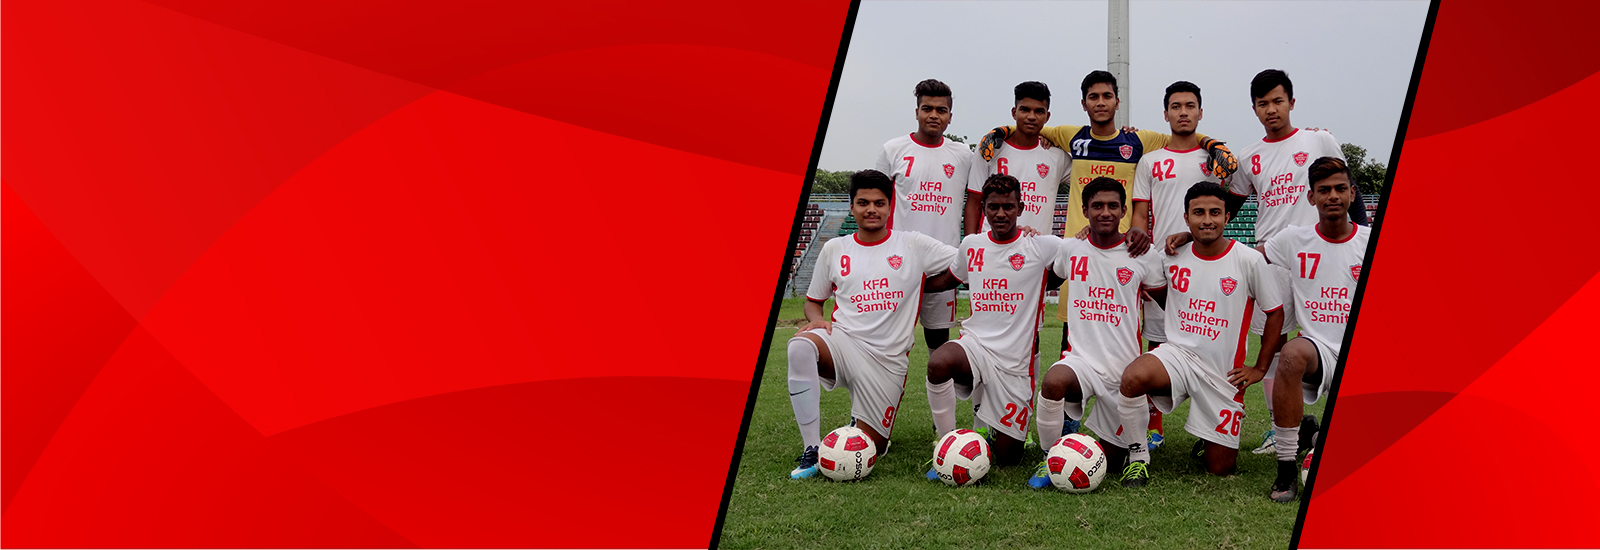 Congatulations to academy boys for being selected in the Senior Team, playing CFL Premiere Division 2018